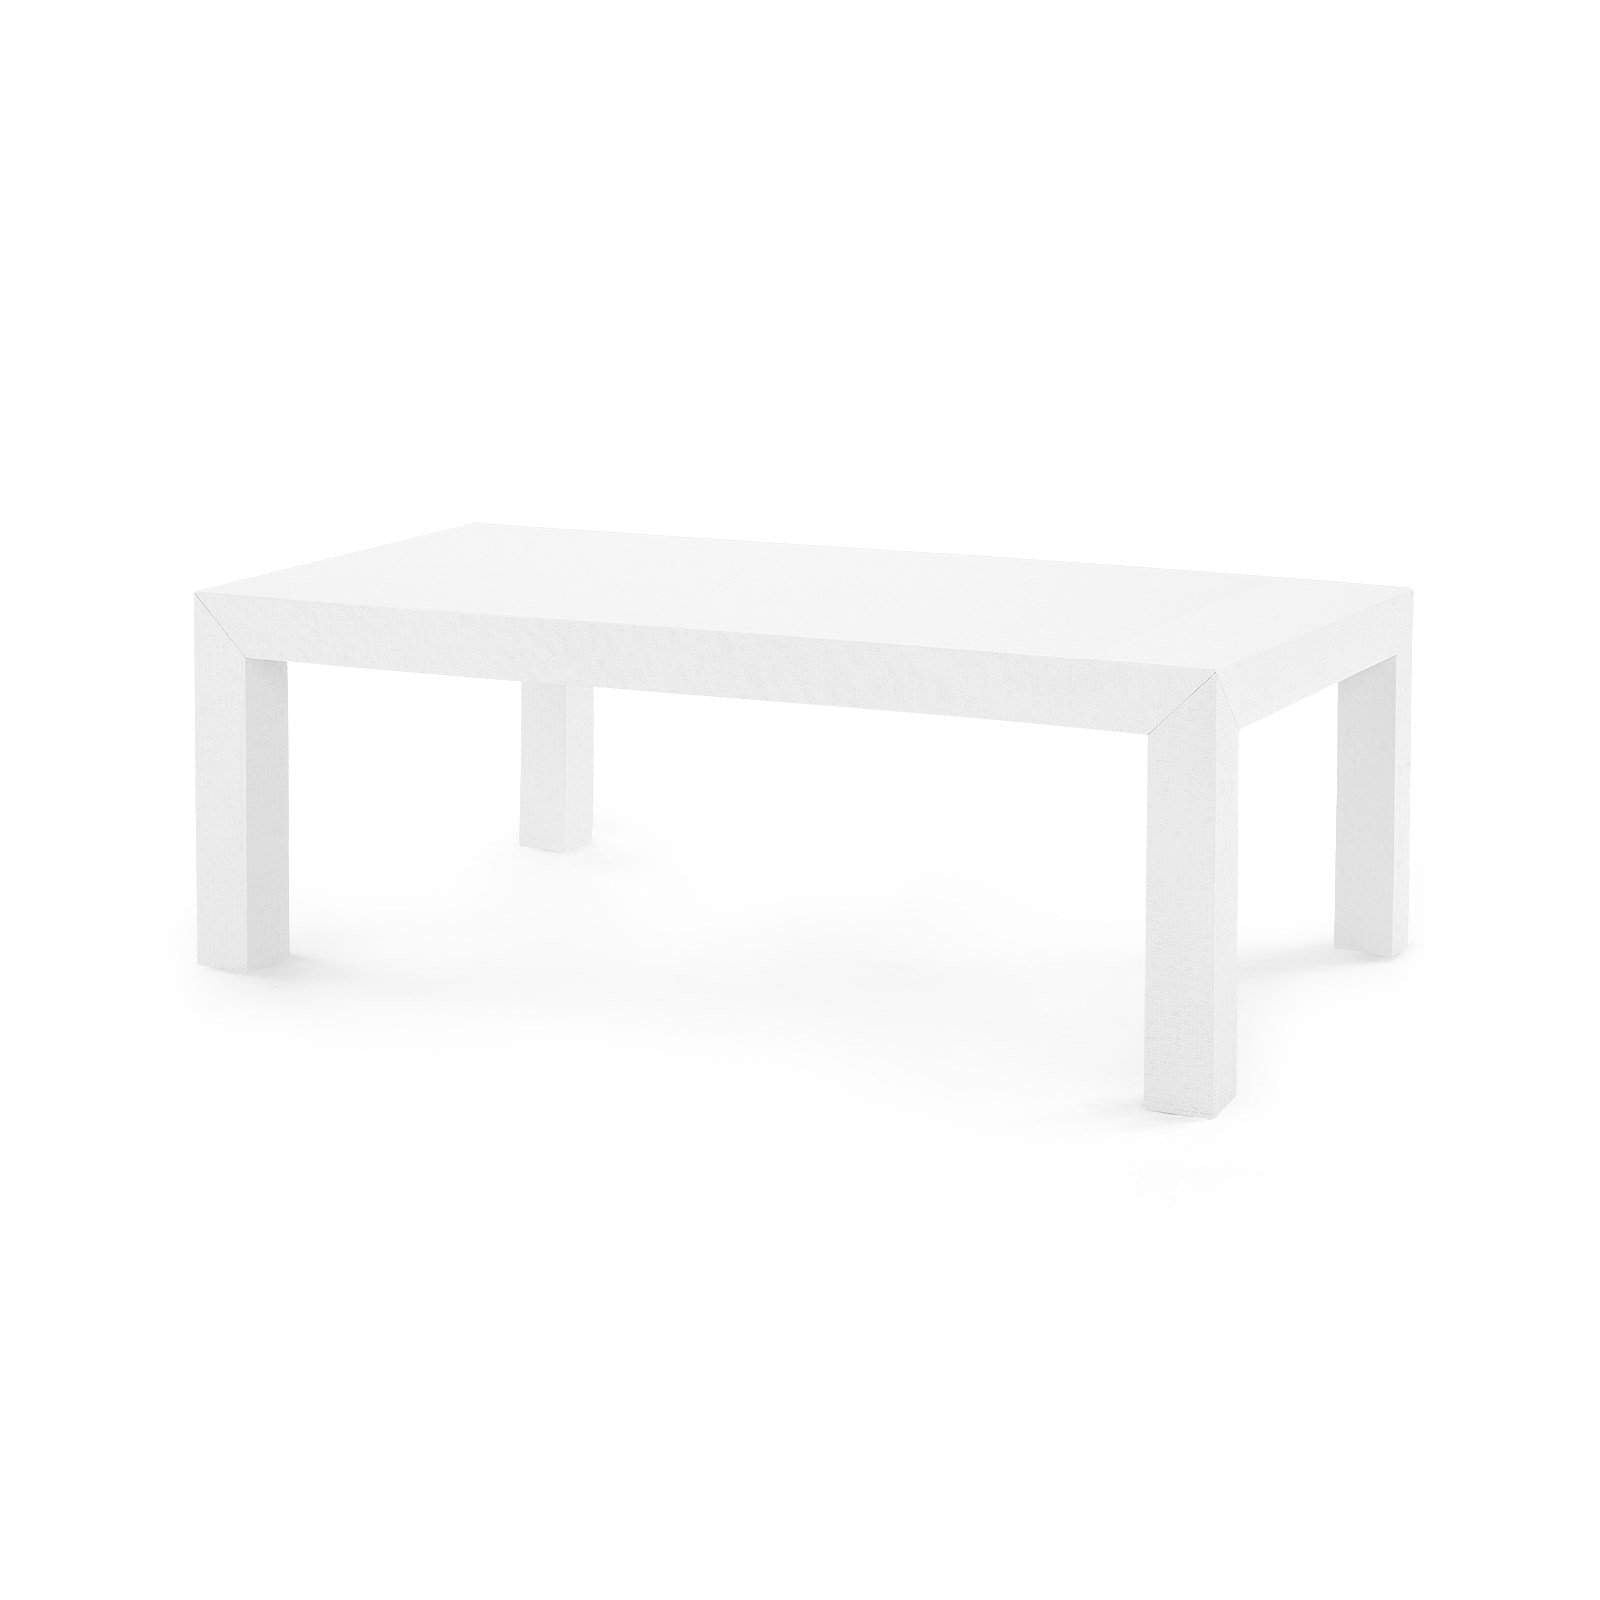 Bungalow 5 parsons coffee table in white bungalow 5 parsons coffee table in white blue hand home geotapseo Gallery